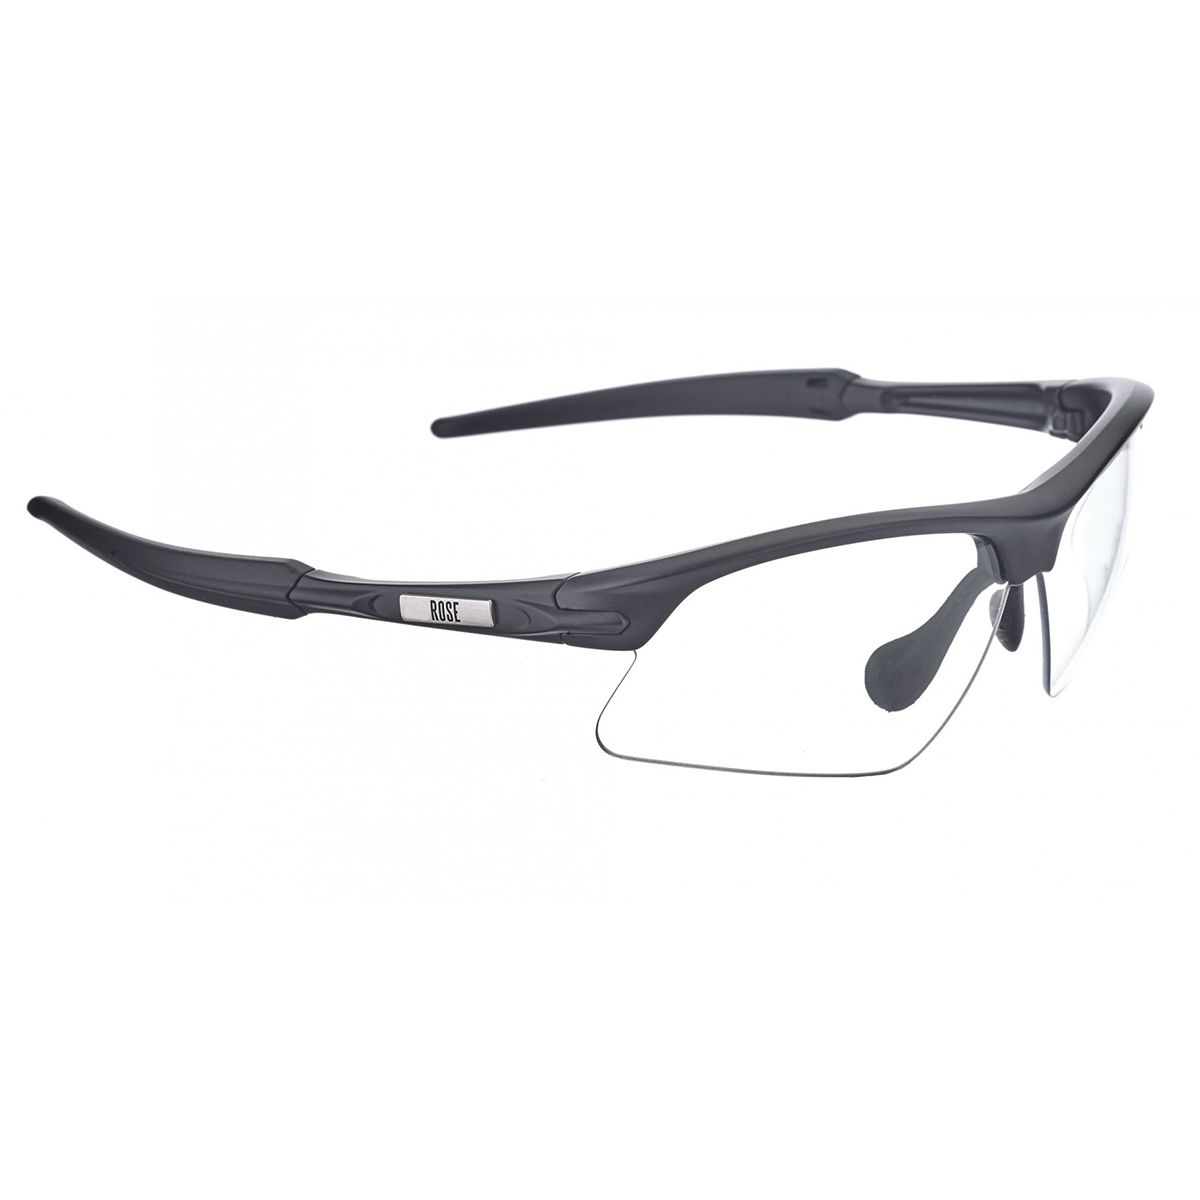 PS 09 Photochromic Brille